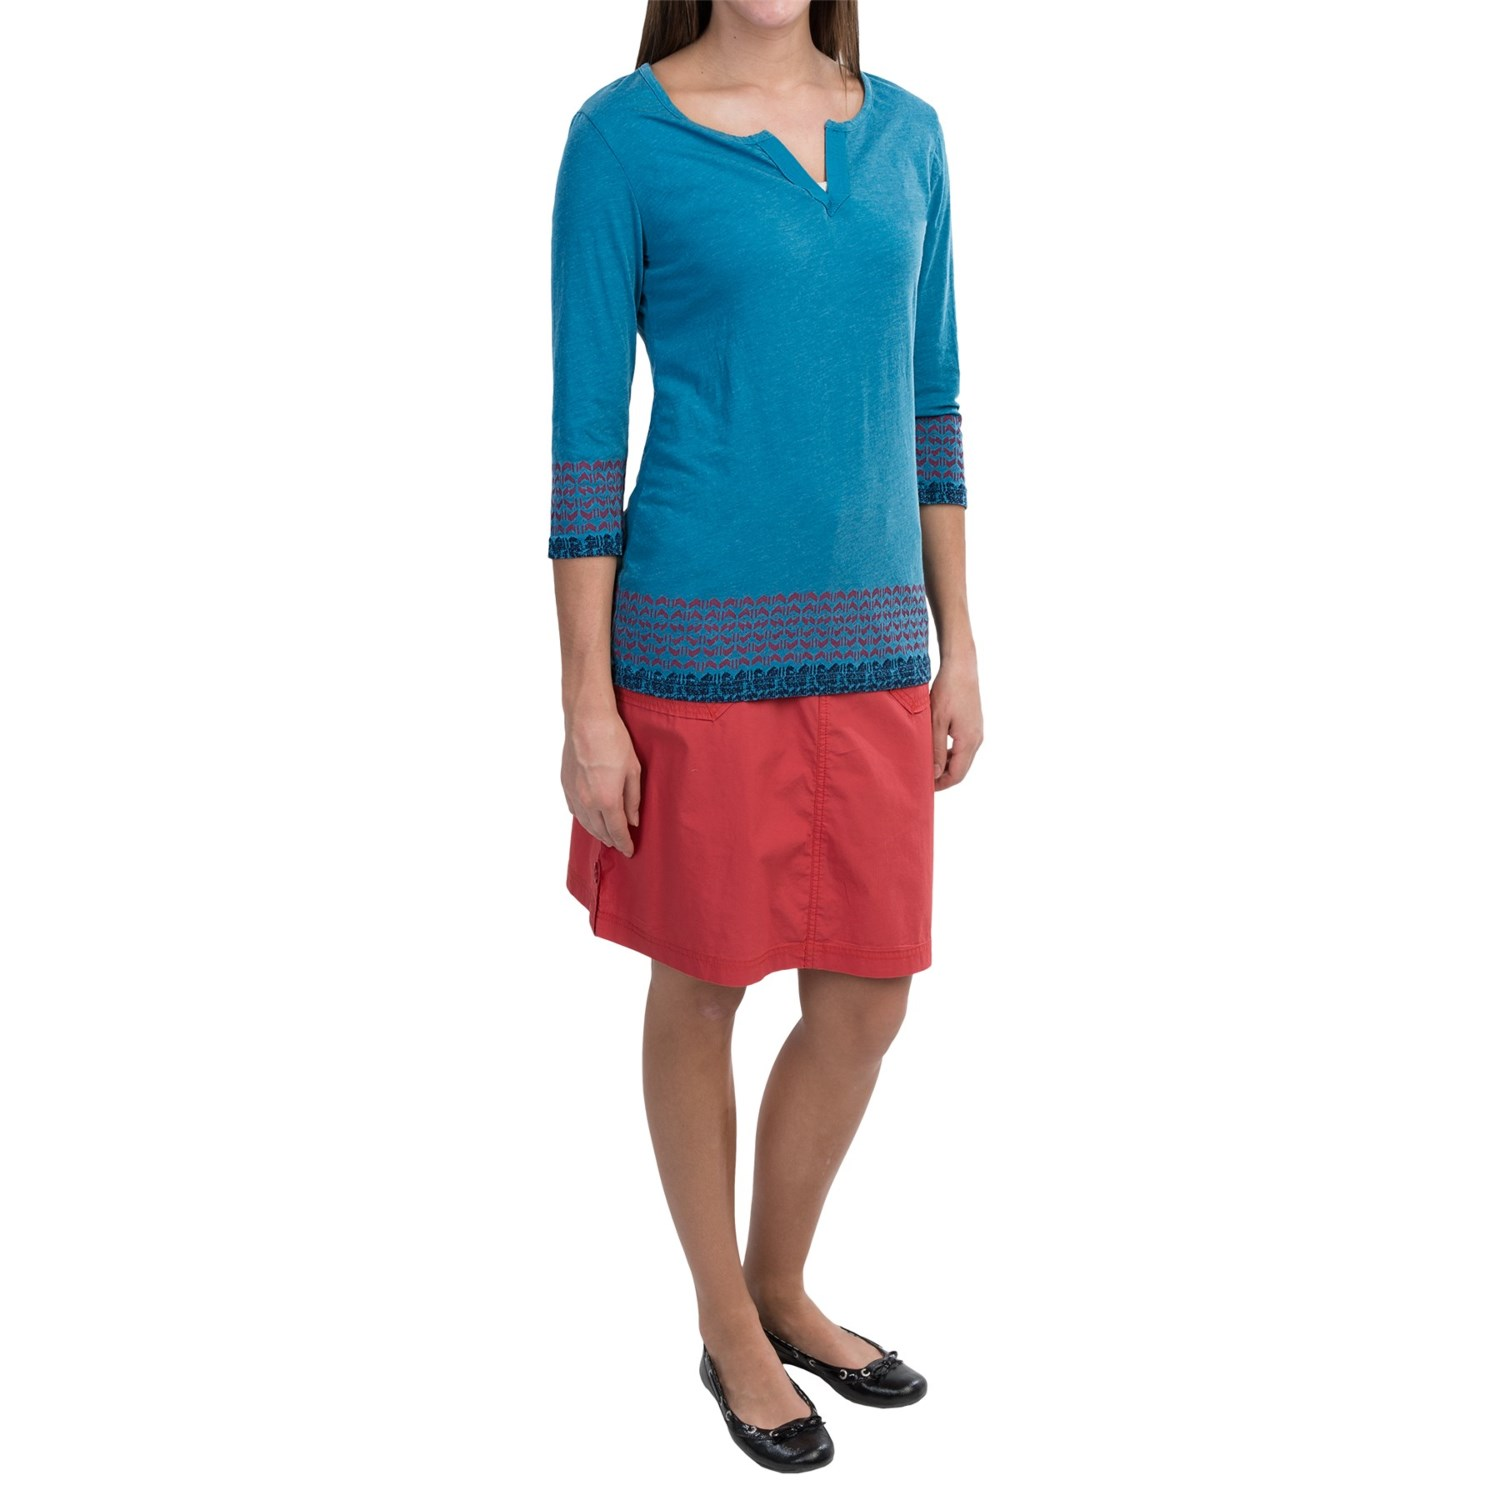 Organic cotton clothes for women